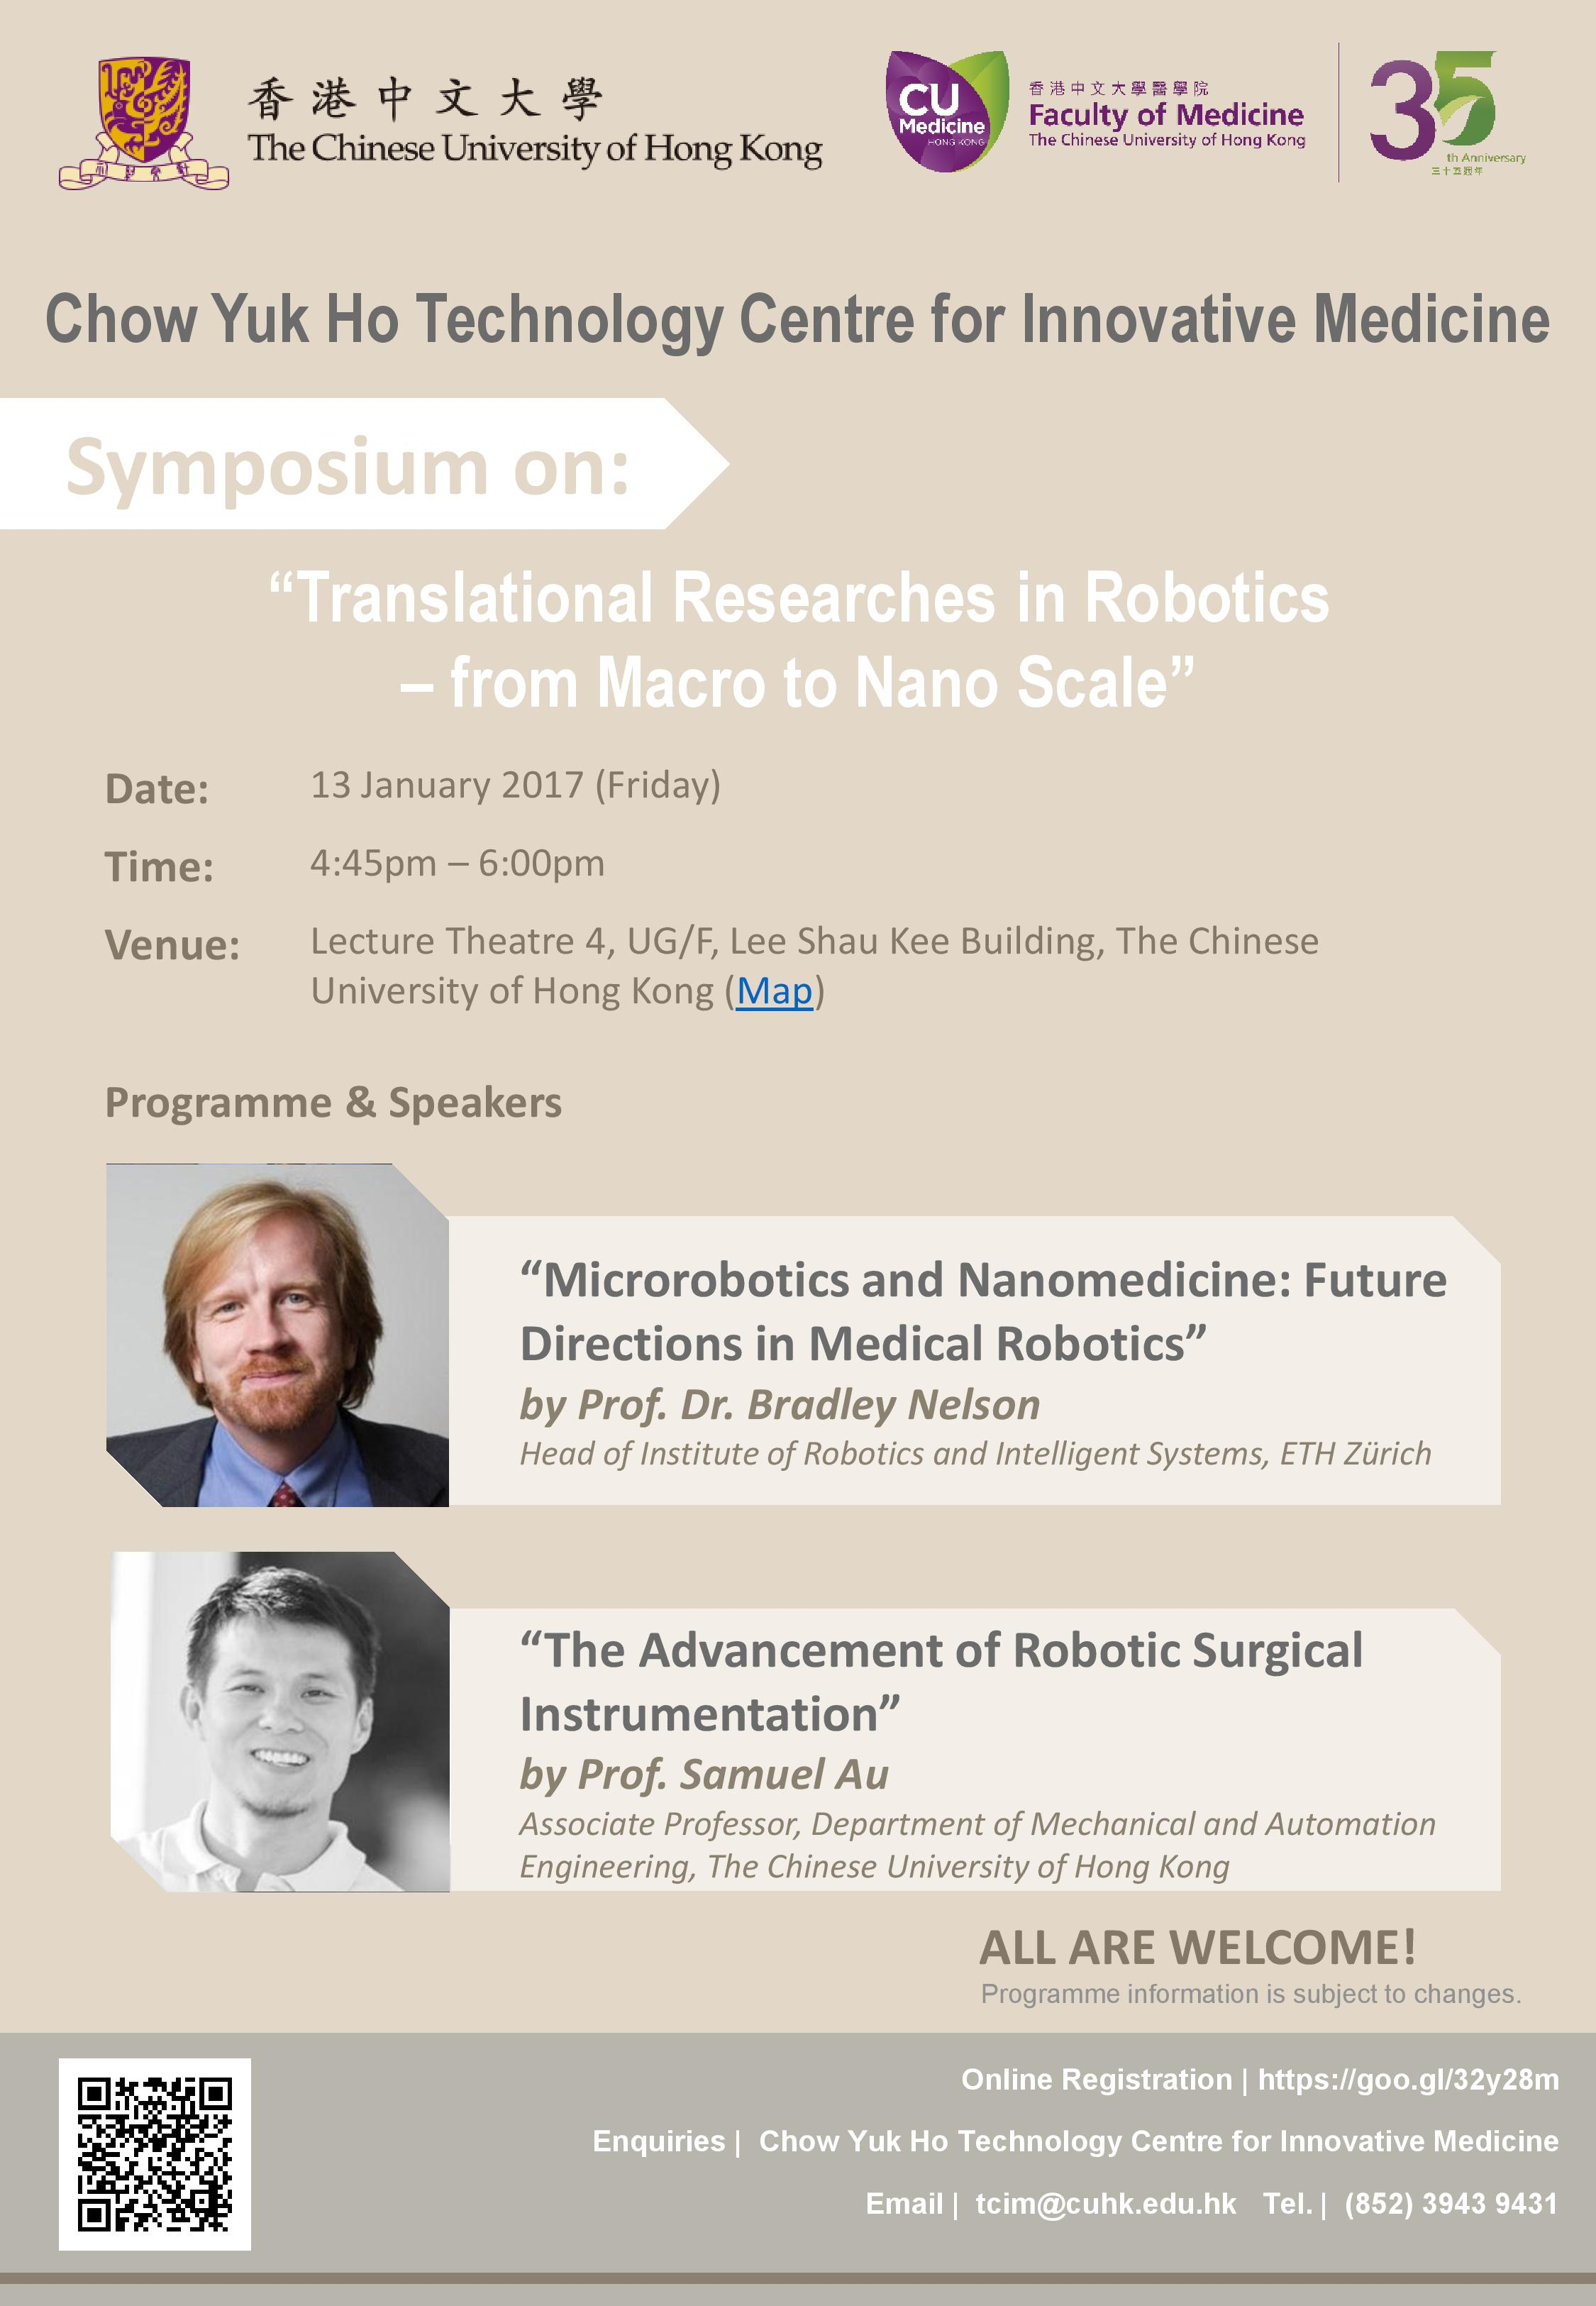 """Symposium on: """"Translational Researches in Robotics – from Macro to Nano Scale"""""""